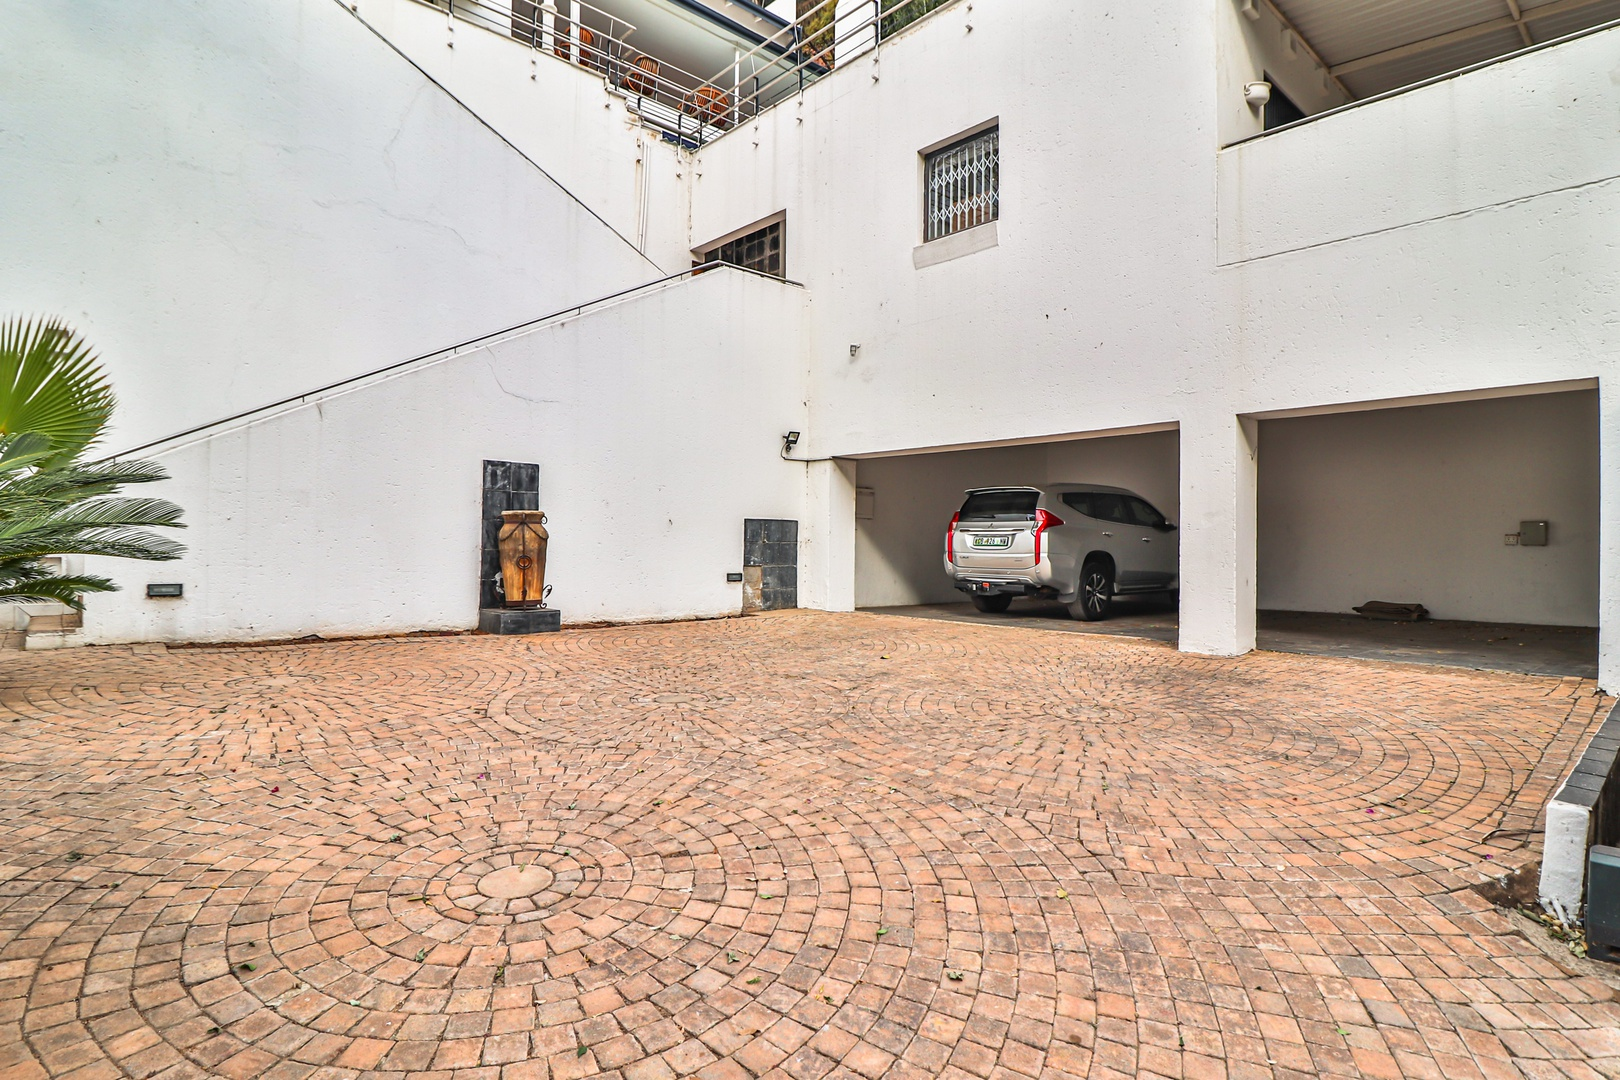 House in Kosmos Village - Garage parking for four to five vehicles plus additional parking space.